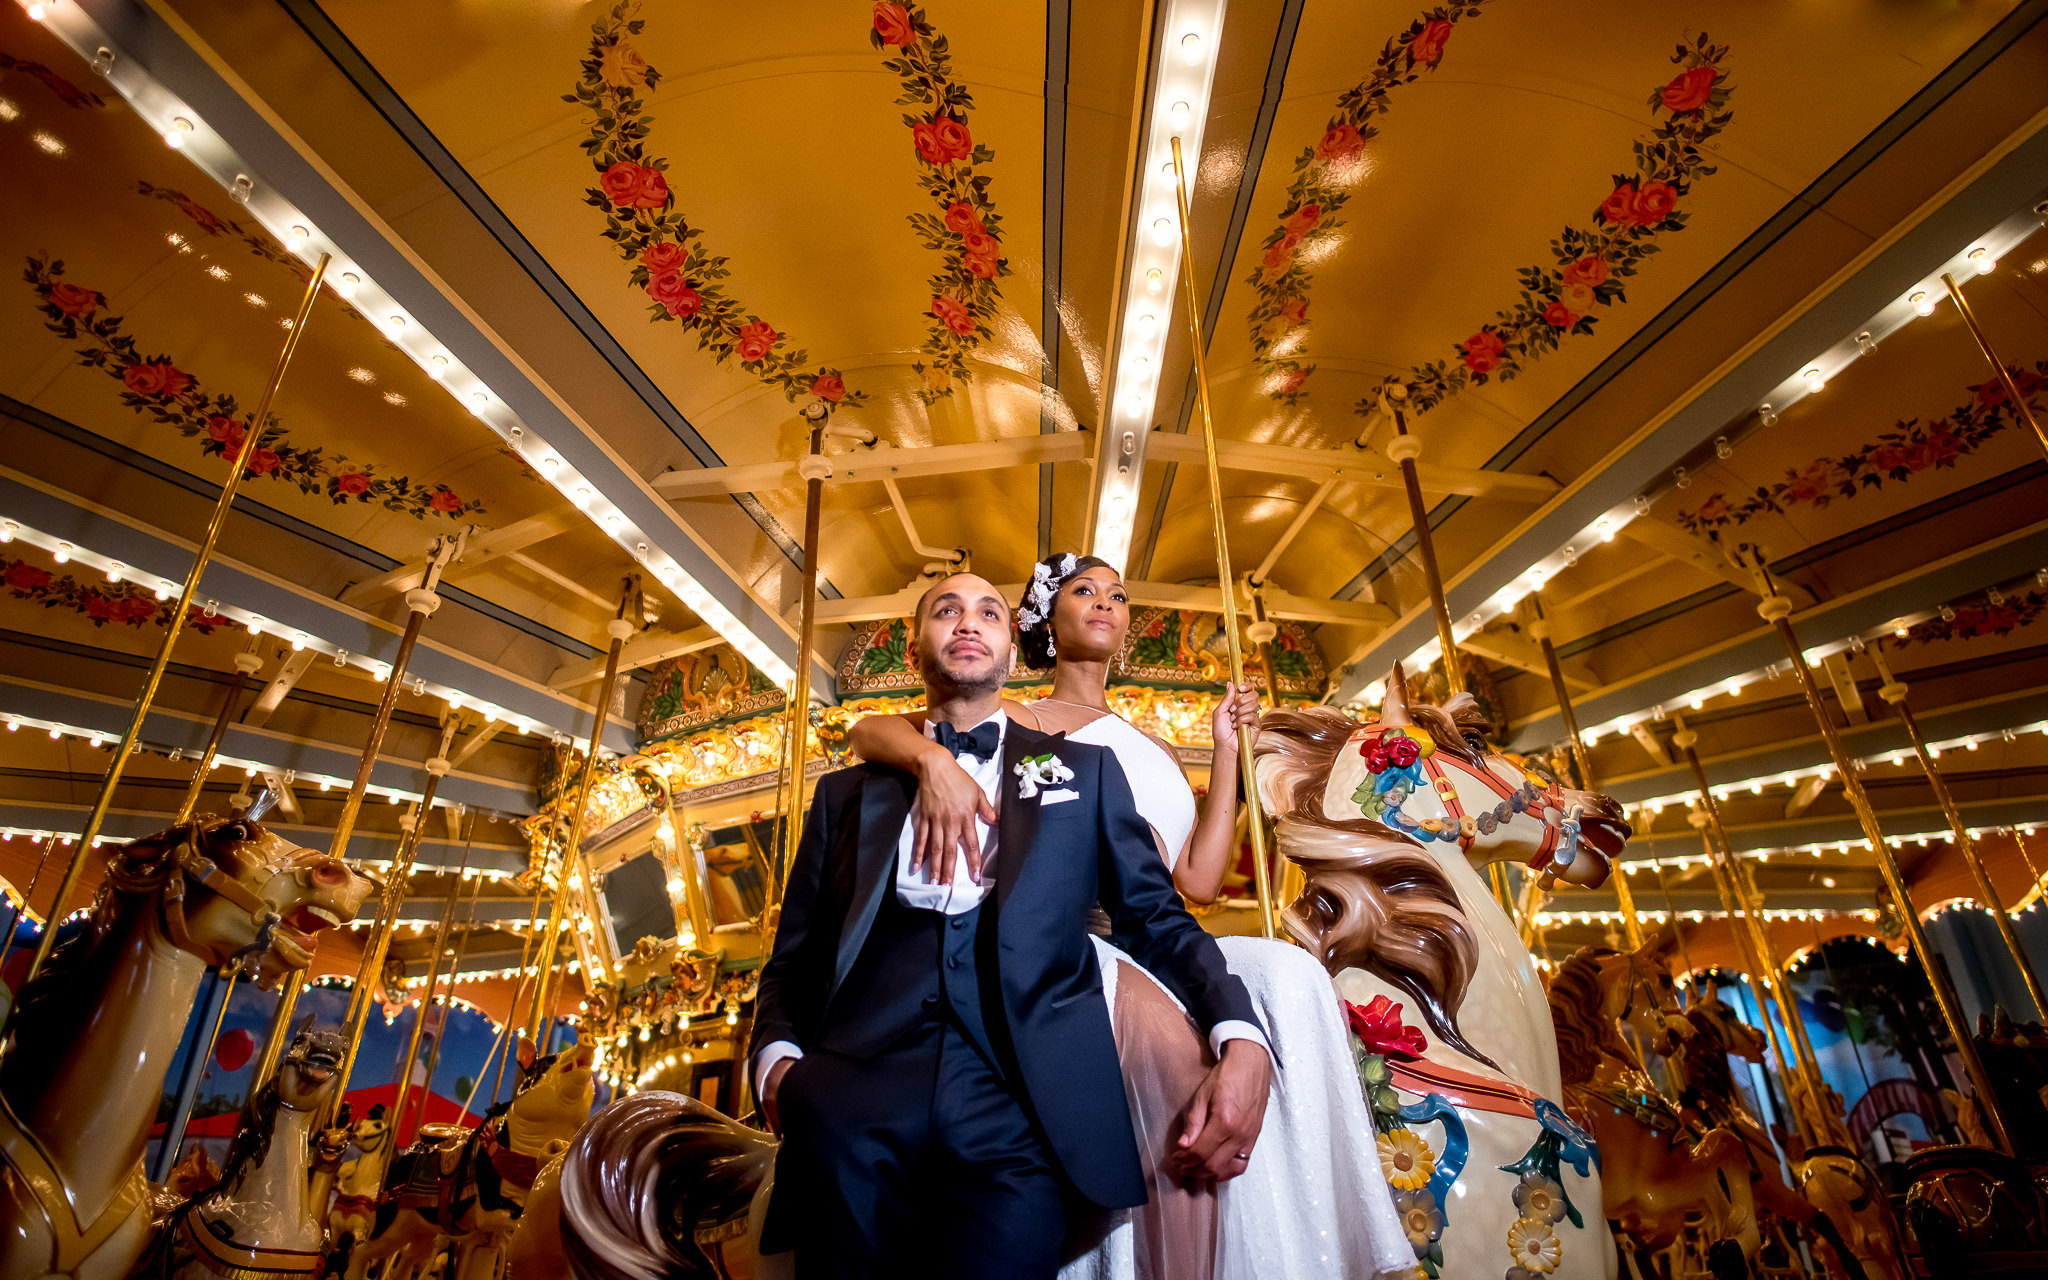 Bride and groom posing against a carousel - photo by Adibe Photography